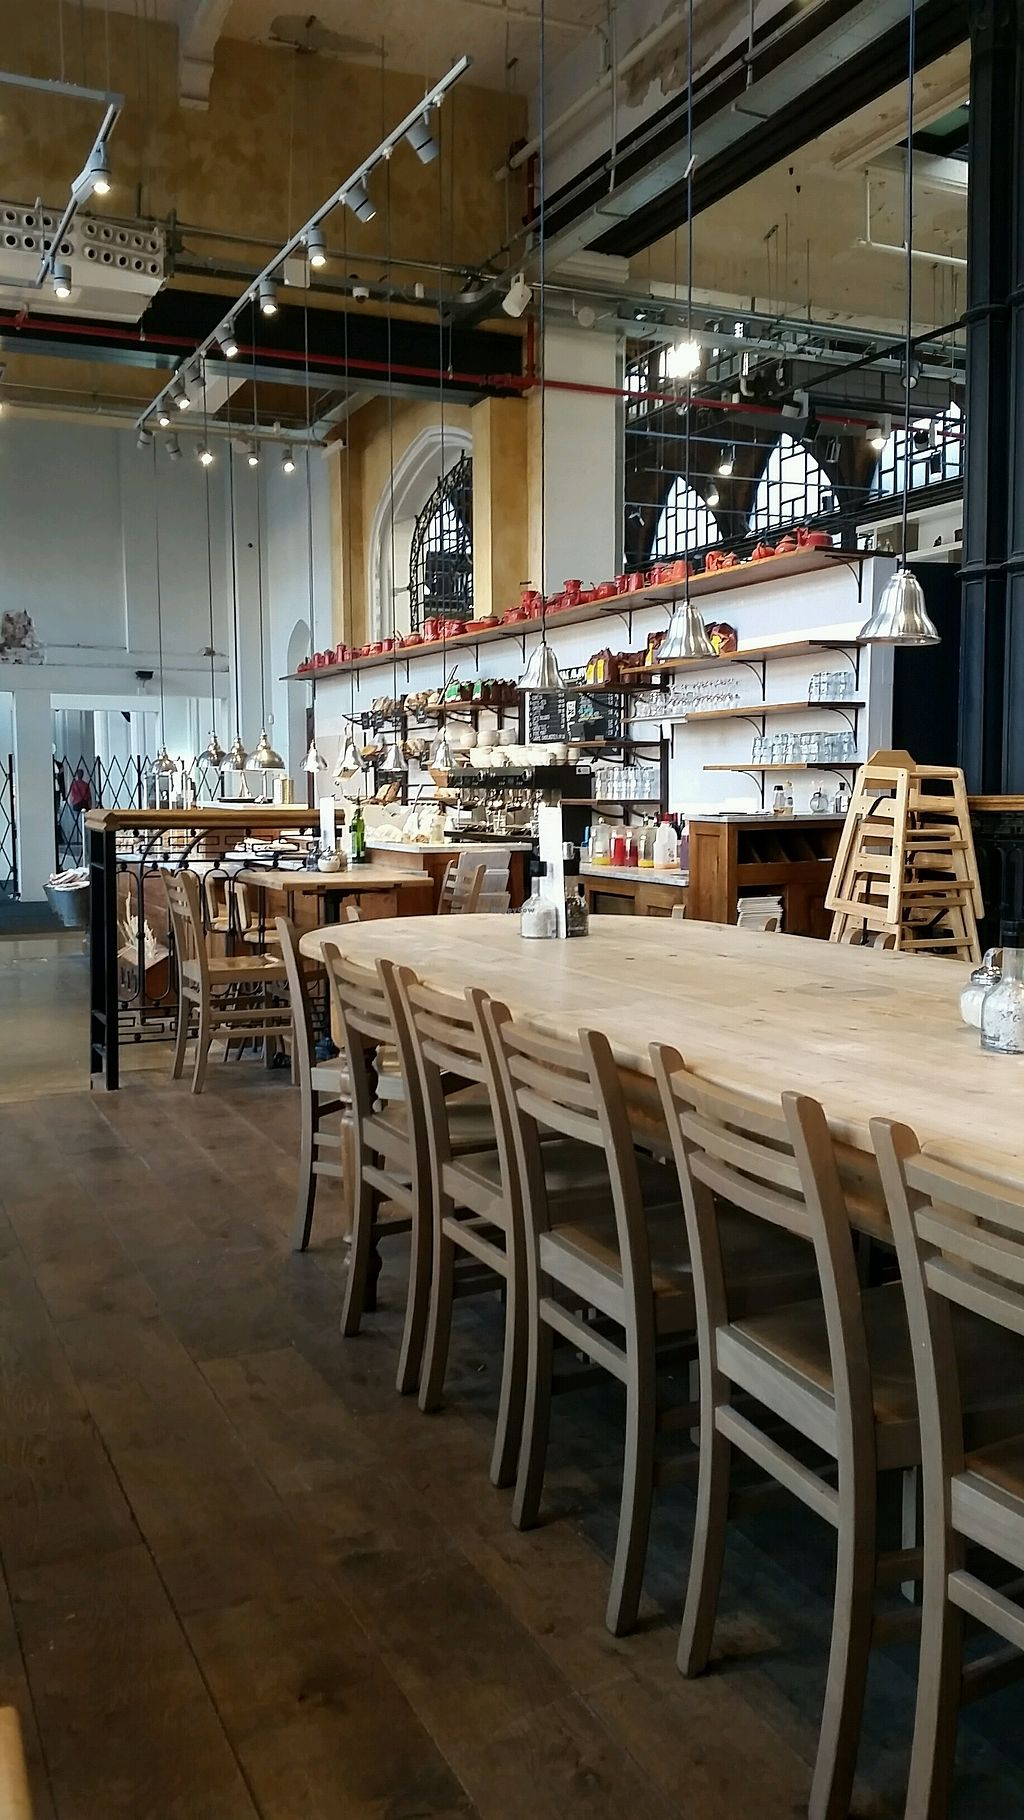 """Photo of Le Pain Quotidien - Kalandeberg  by <a href=""""/members/profile/NJ220"""">NJ220</a> <br/>Inside :) <br/> September 24, 2017  - <a href='/contact/abuse/image/28513/307832'>Report</a>"""